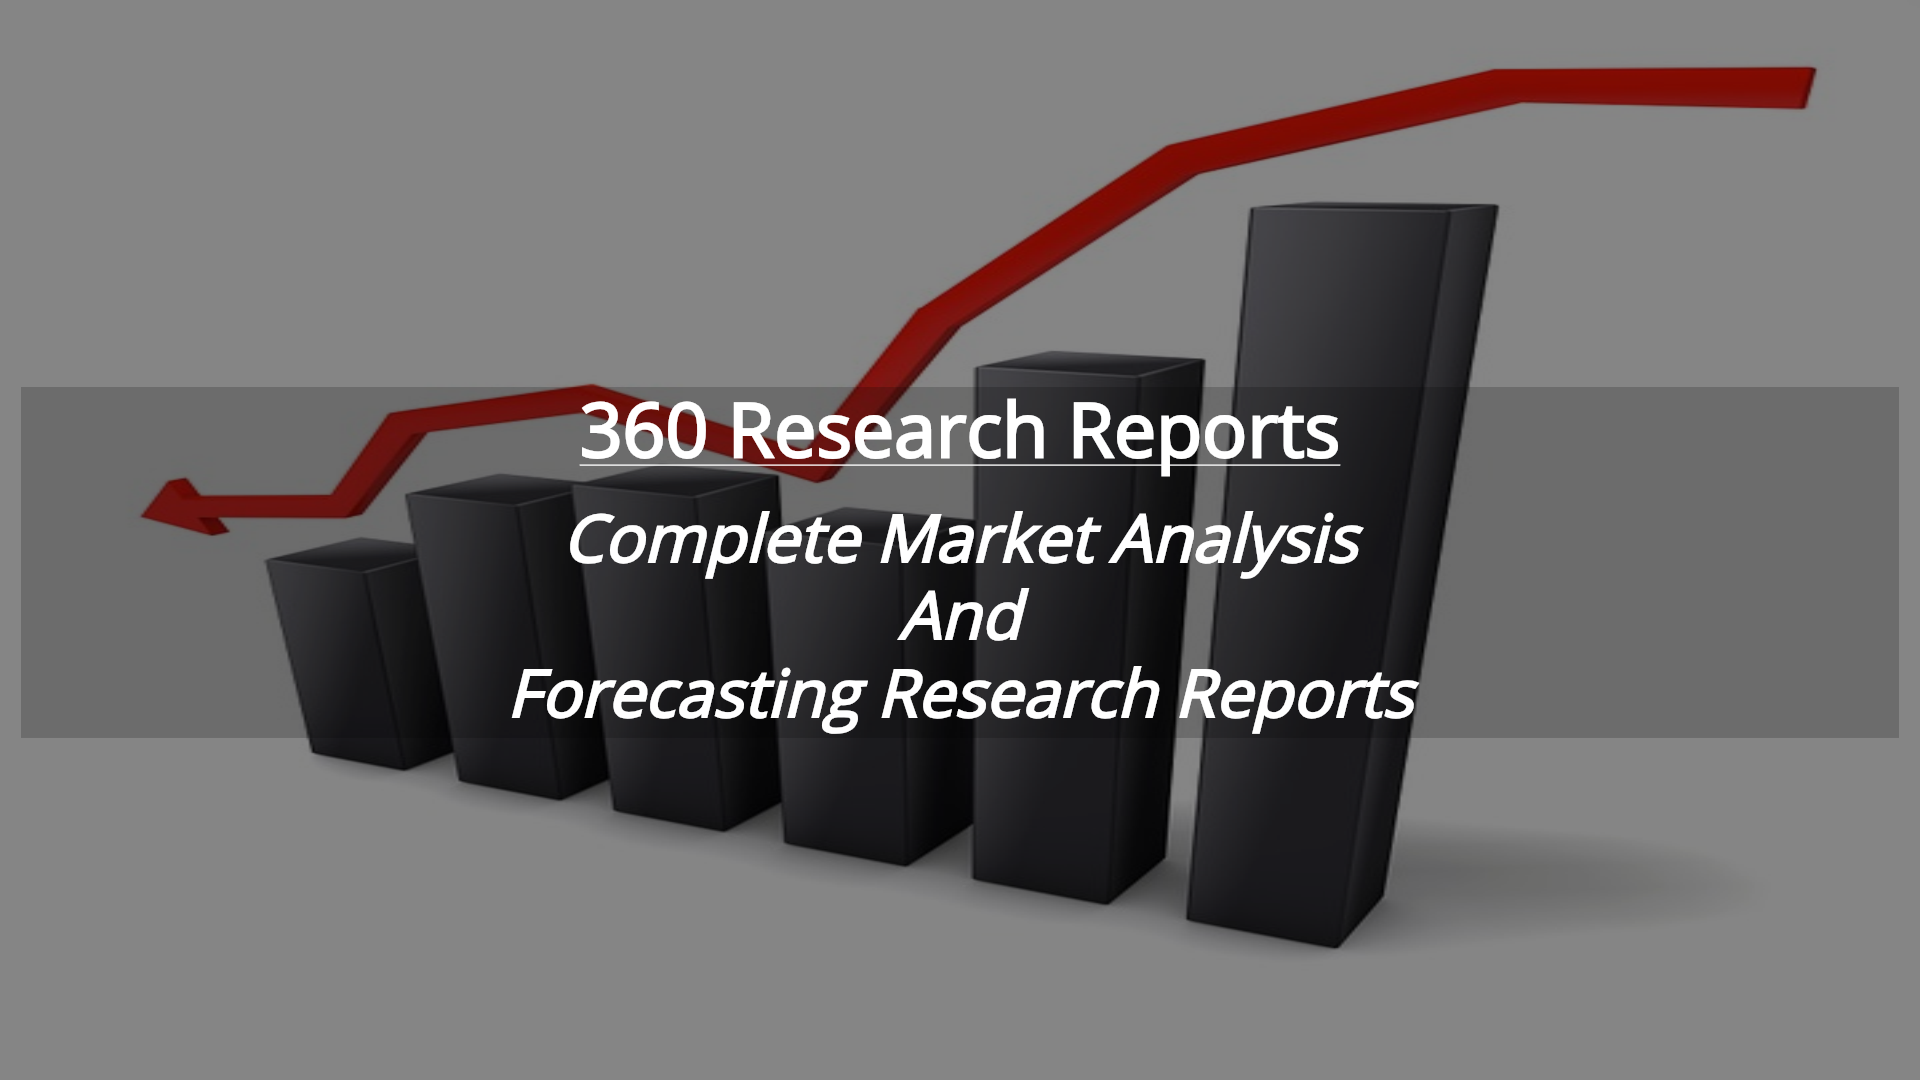 Zika Virus Testing Market 2019 is Projected to Exhibit a CAGR of 5.5% during the Forecast period 2023 Includes business research, Key players, Revenue Size & Share, Complete Industry Analysis